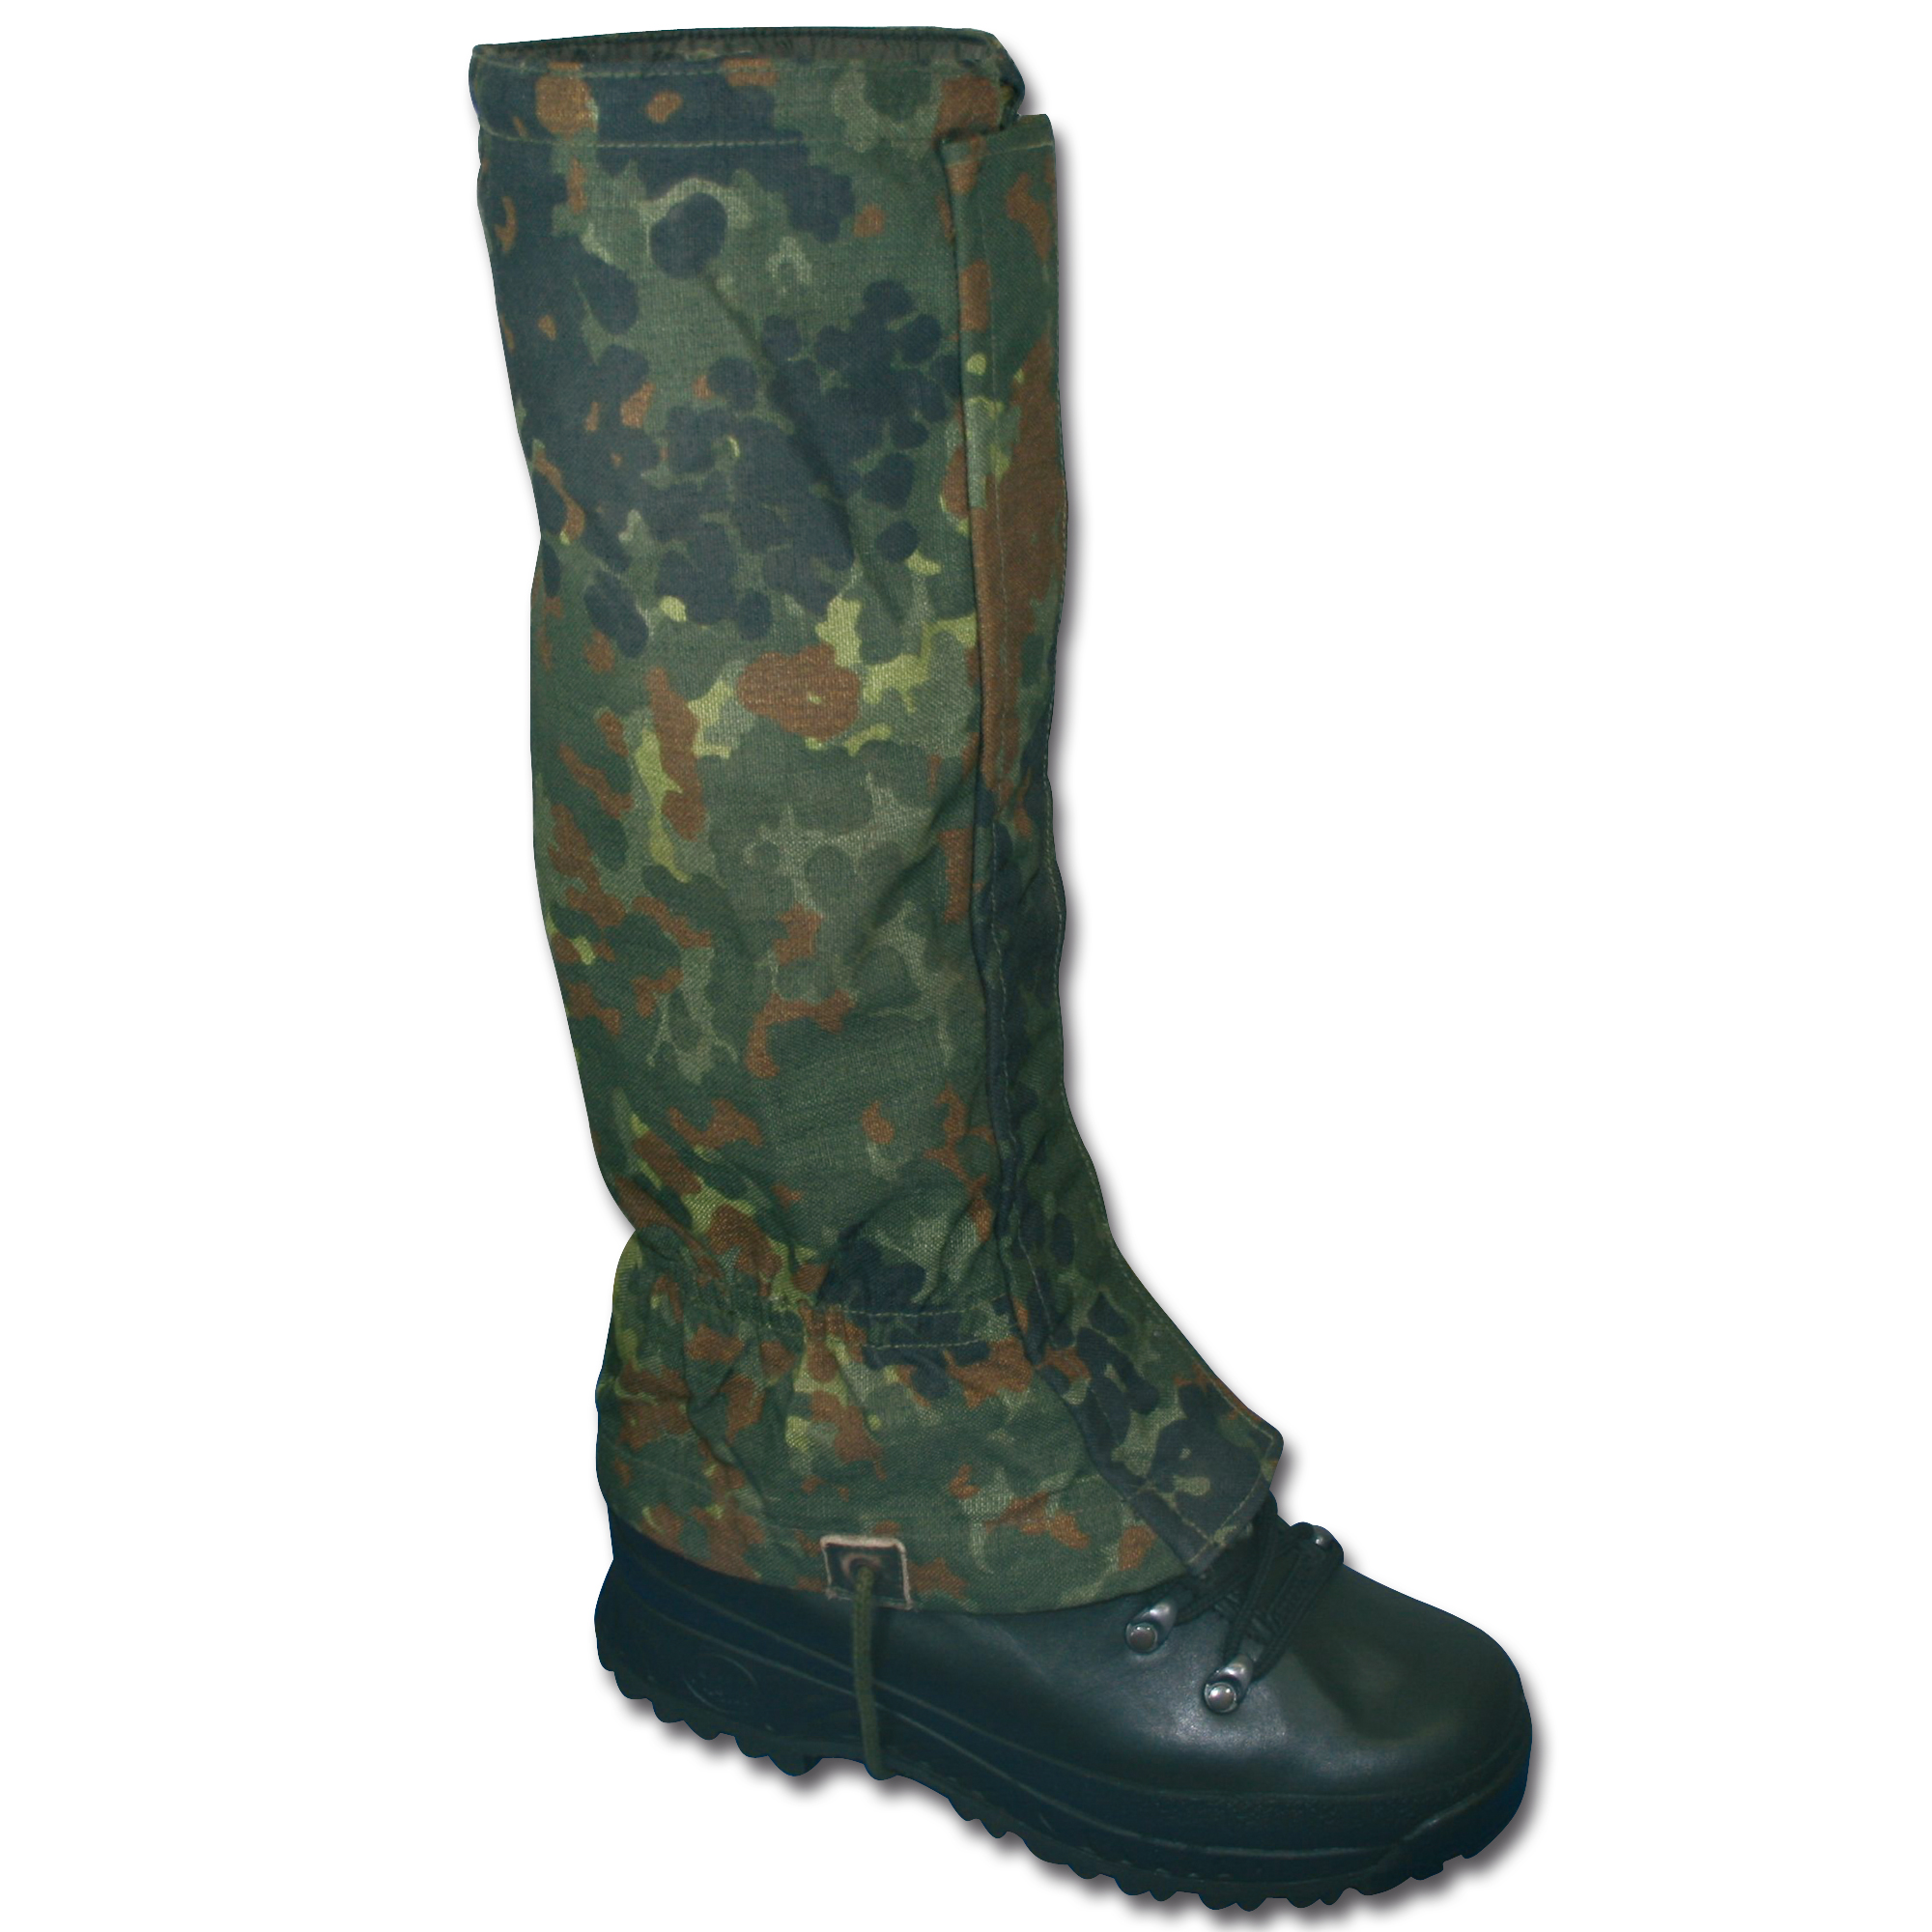 Gaiters MFH flecktarn